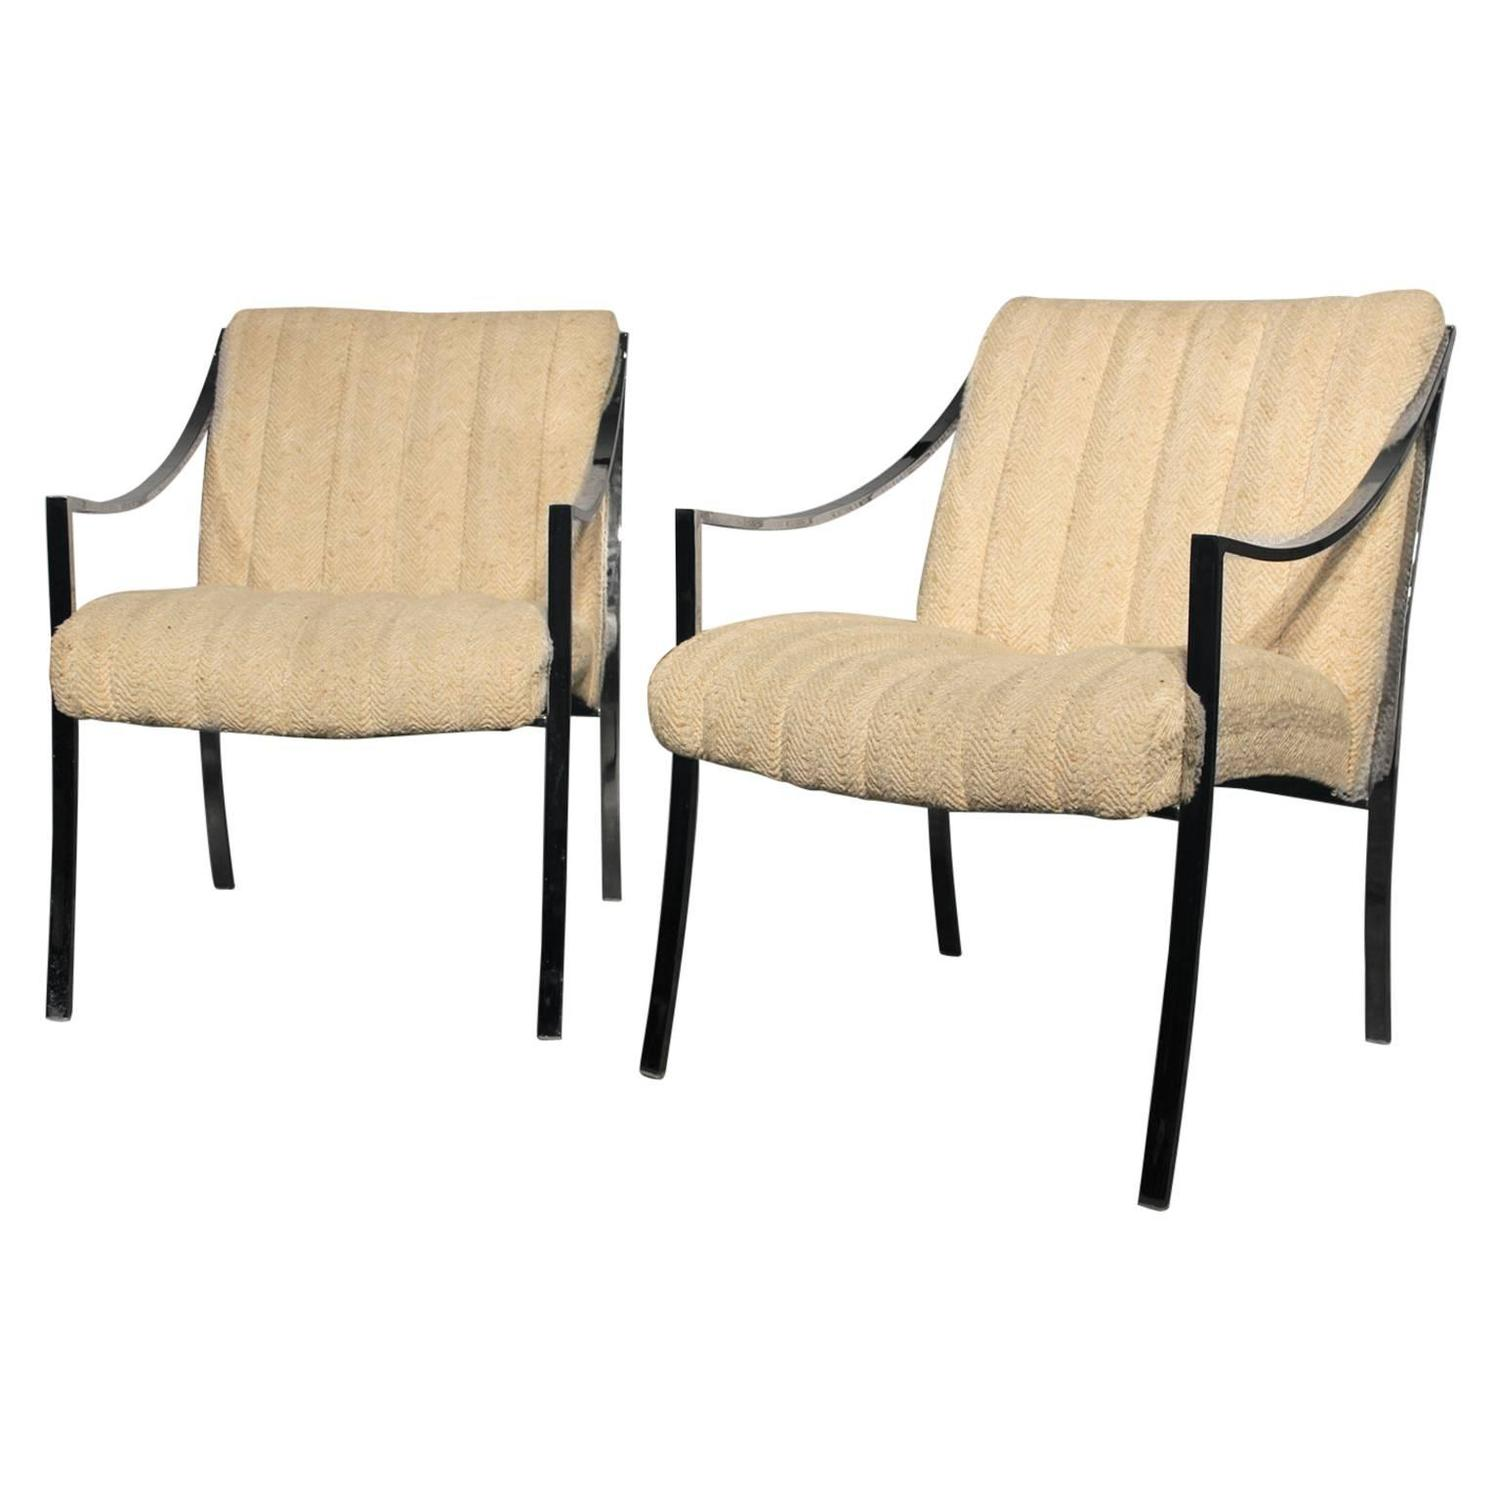 Pair Vintage Milo Baughman Style Chrome Chairs with Oatmeal Colored Upholstery For Sale at 1stdibs